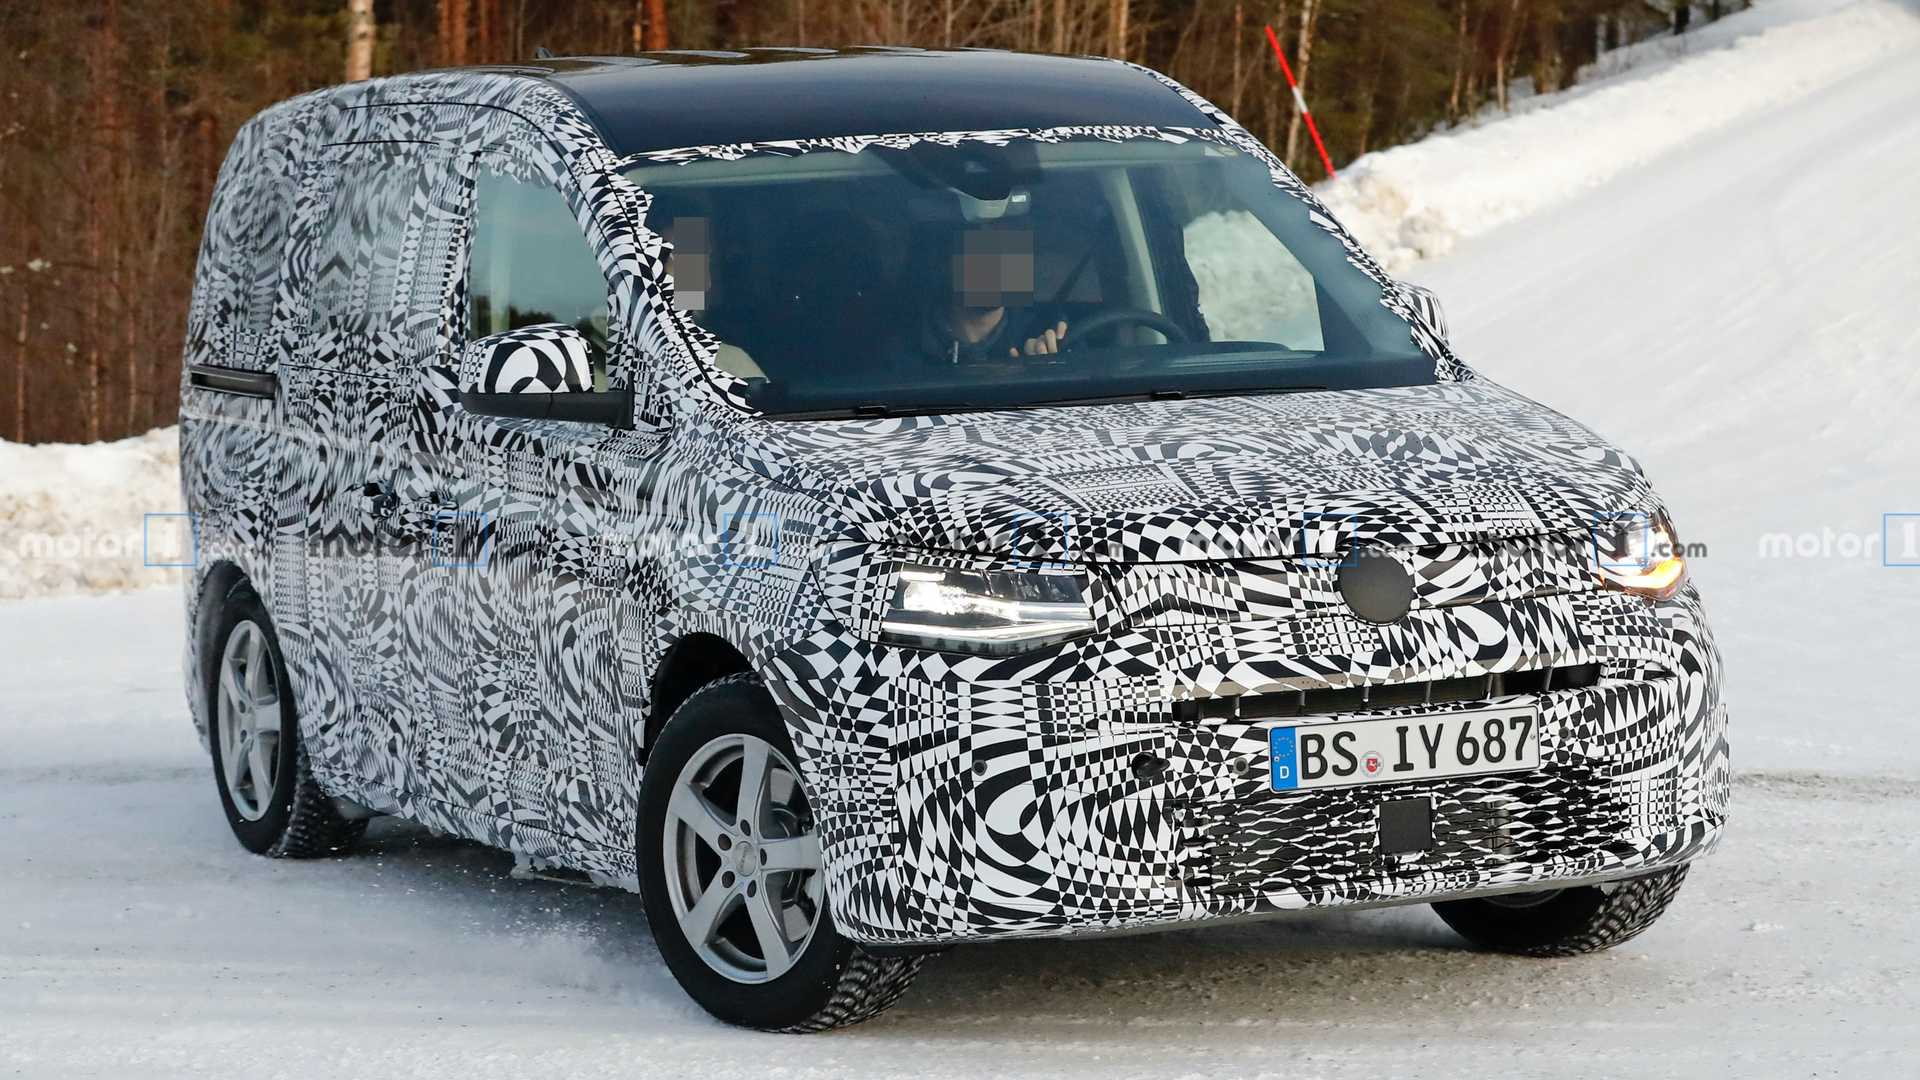 2021 VW Caddy spy video is a reality check about the van's styling